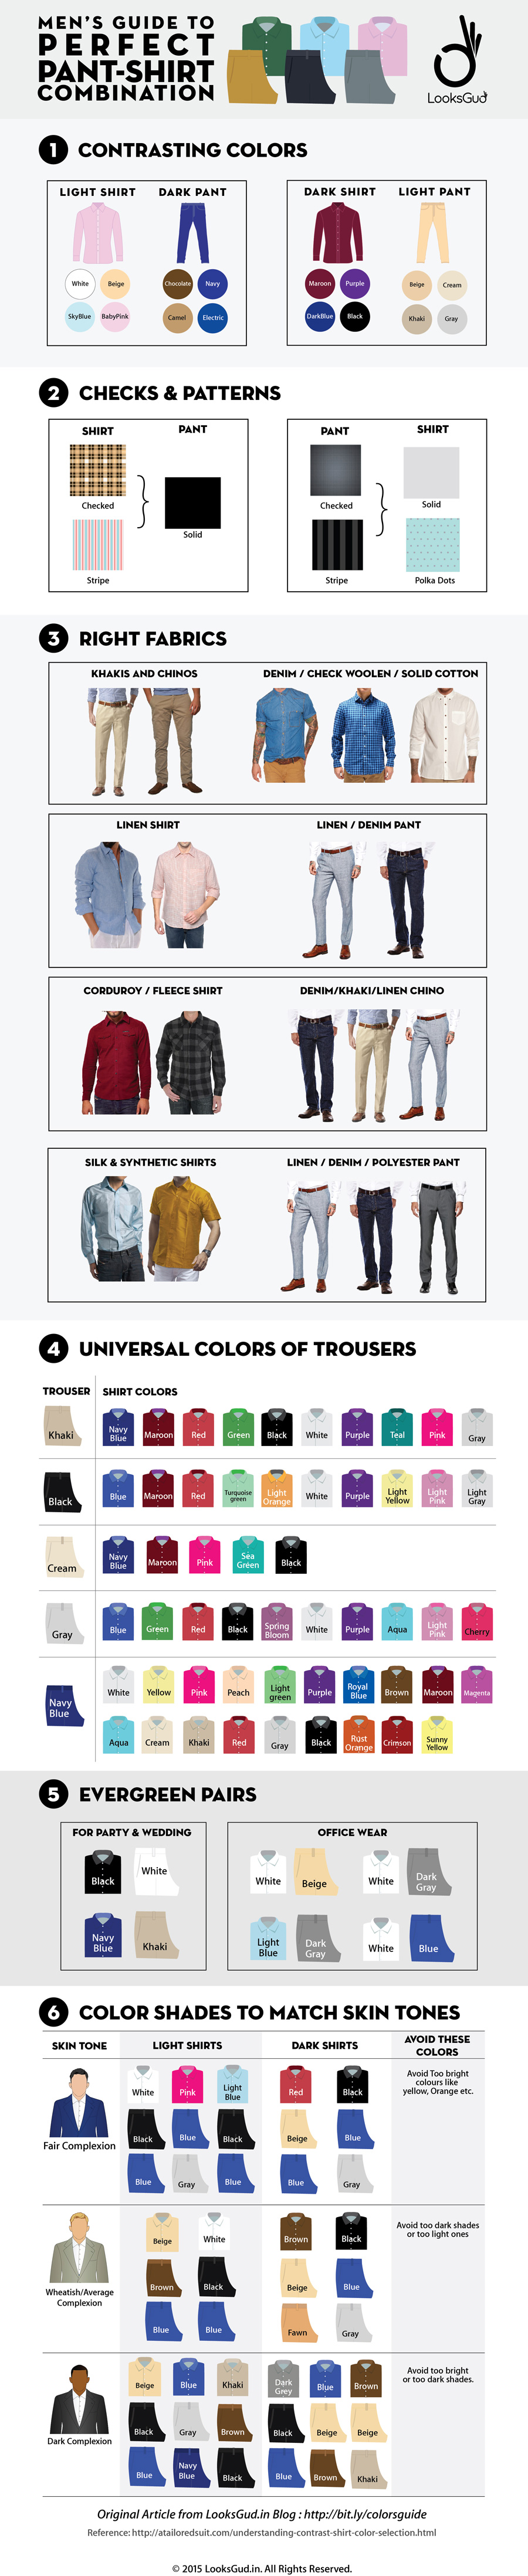 mens shirt combinations guide